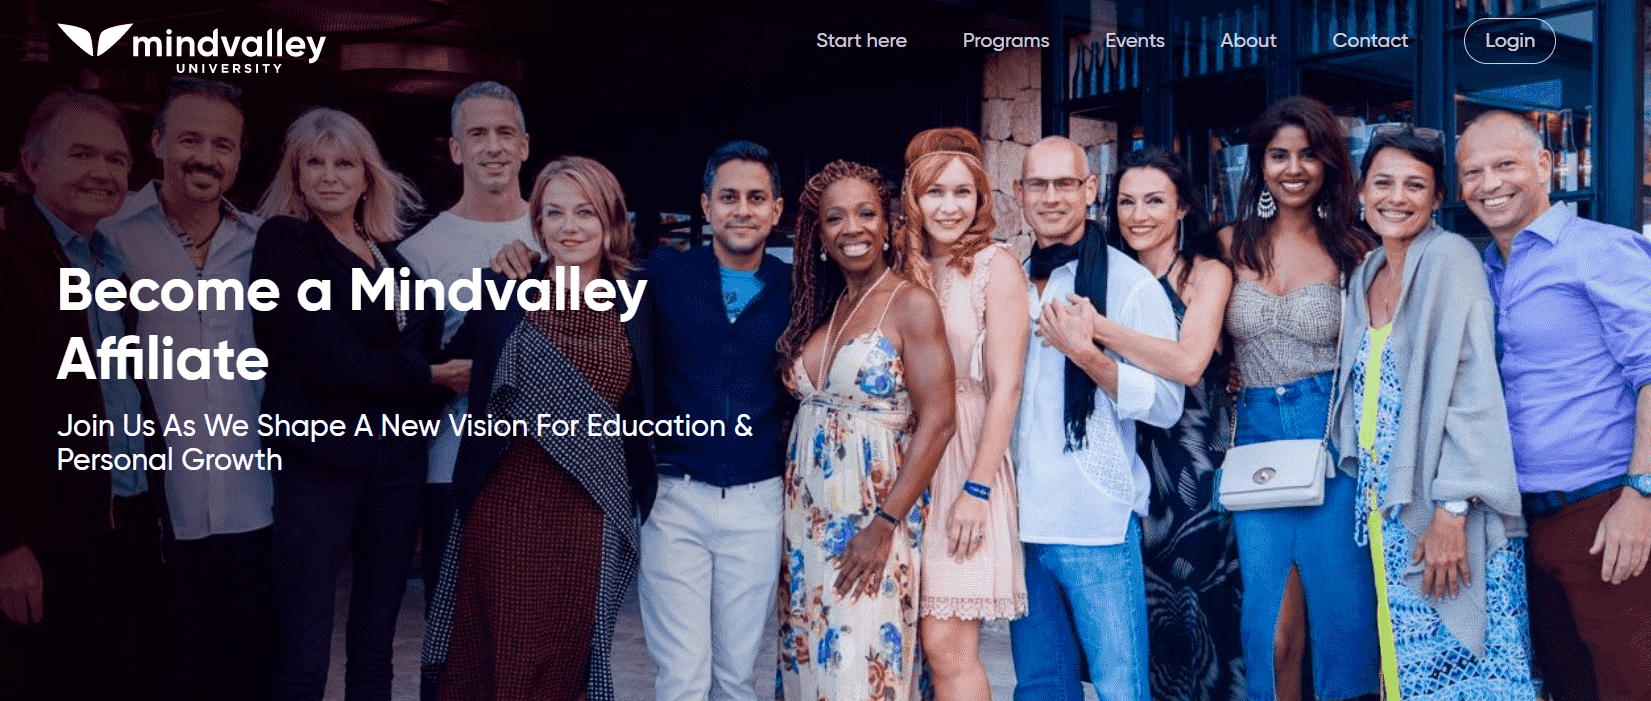 MindValley Review Affiliate Page-min